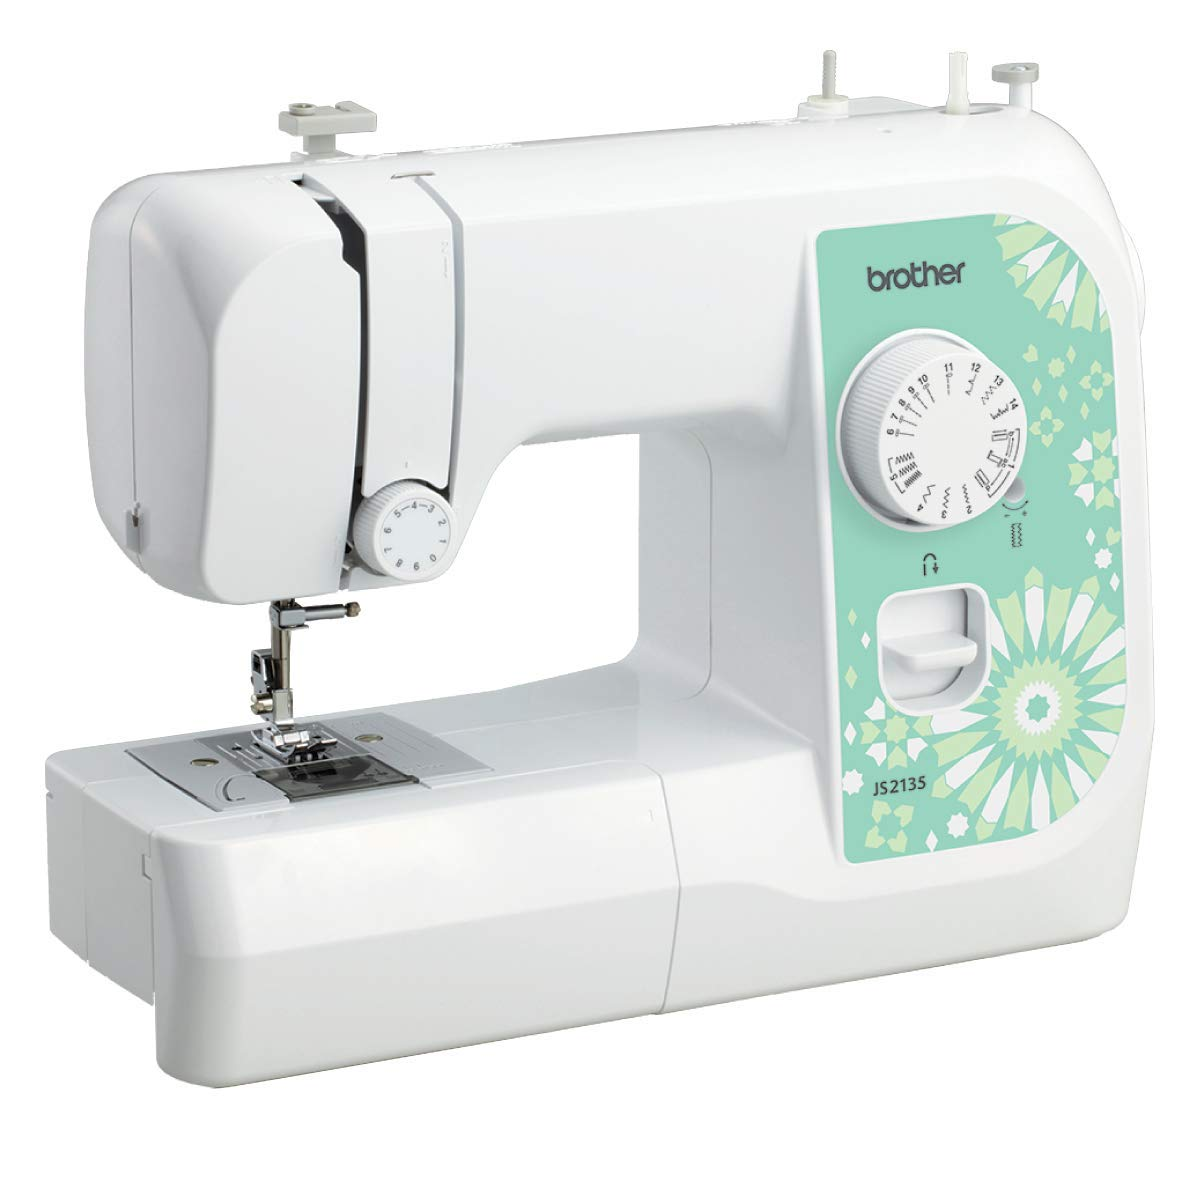 Brother JS2135 - Máquina de coser (Verde, Blanco, Bordado ...